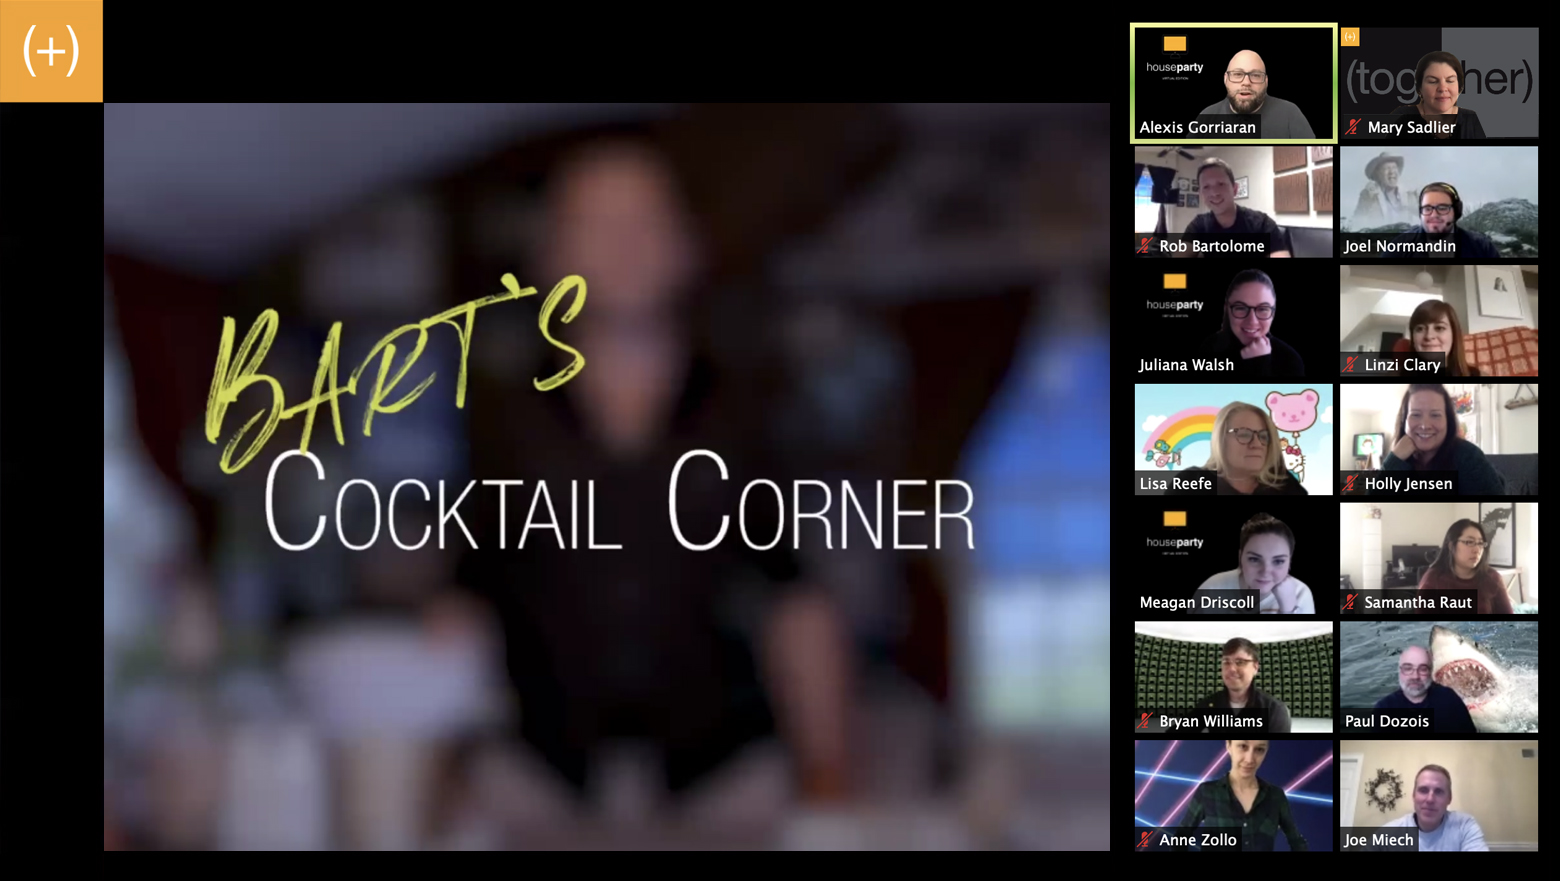 Virtual Meeting - Bart's Cocktail Corner